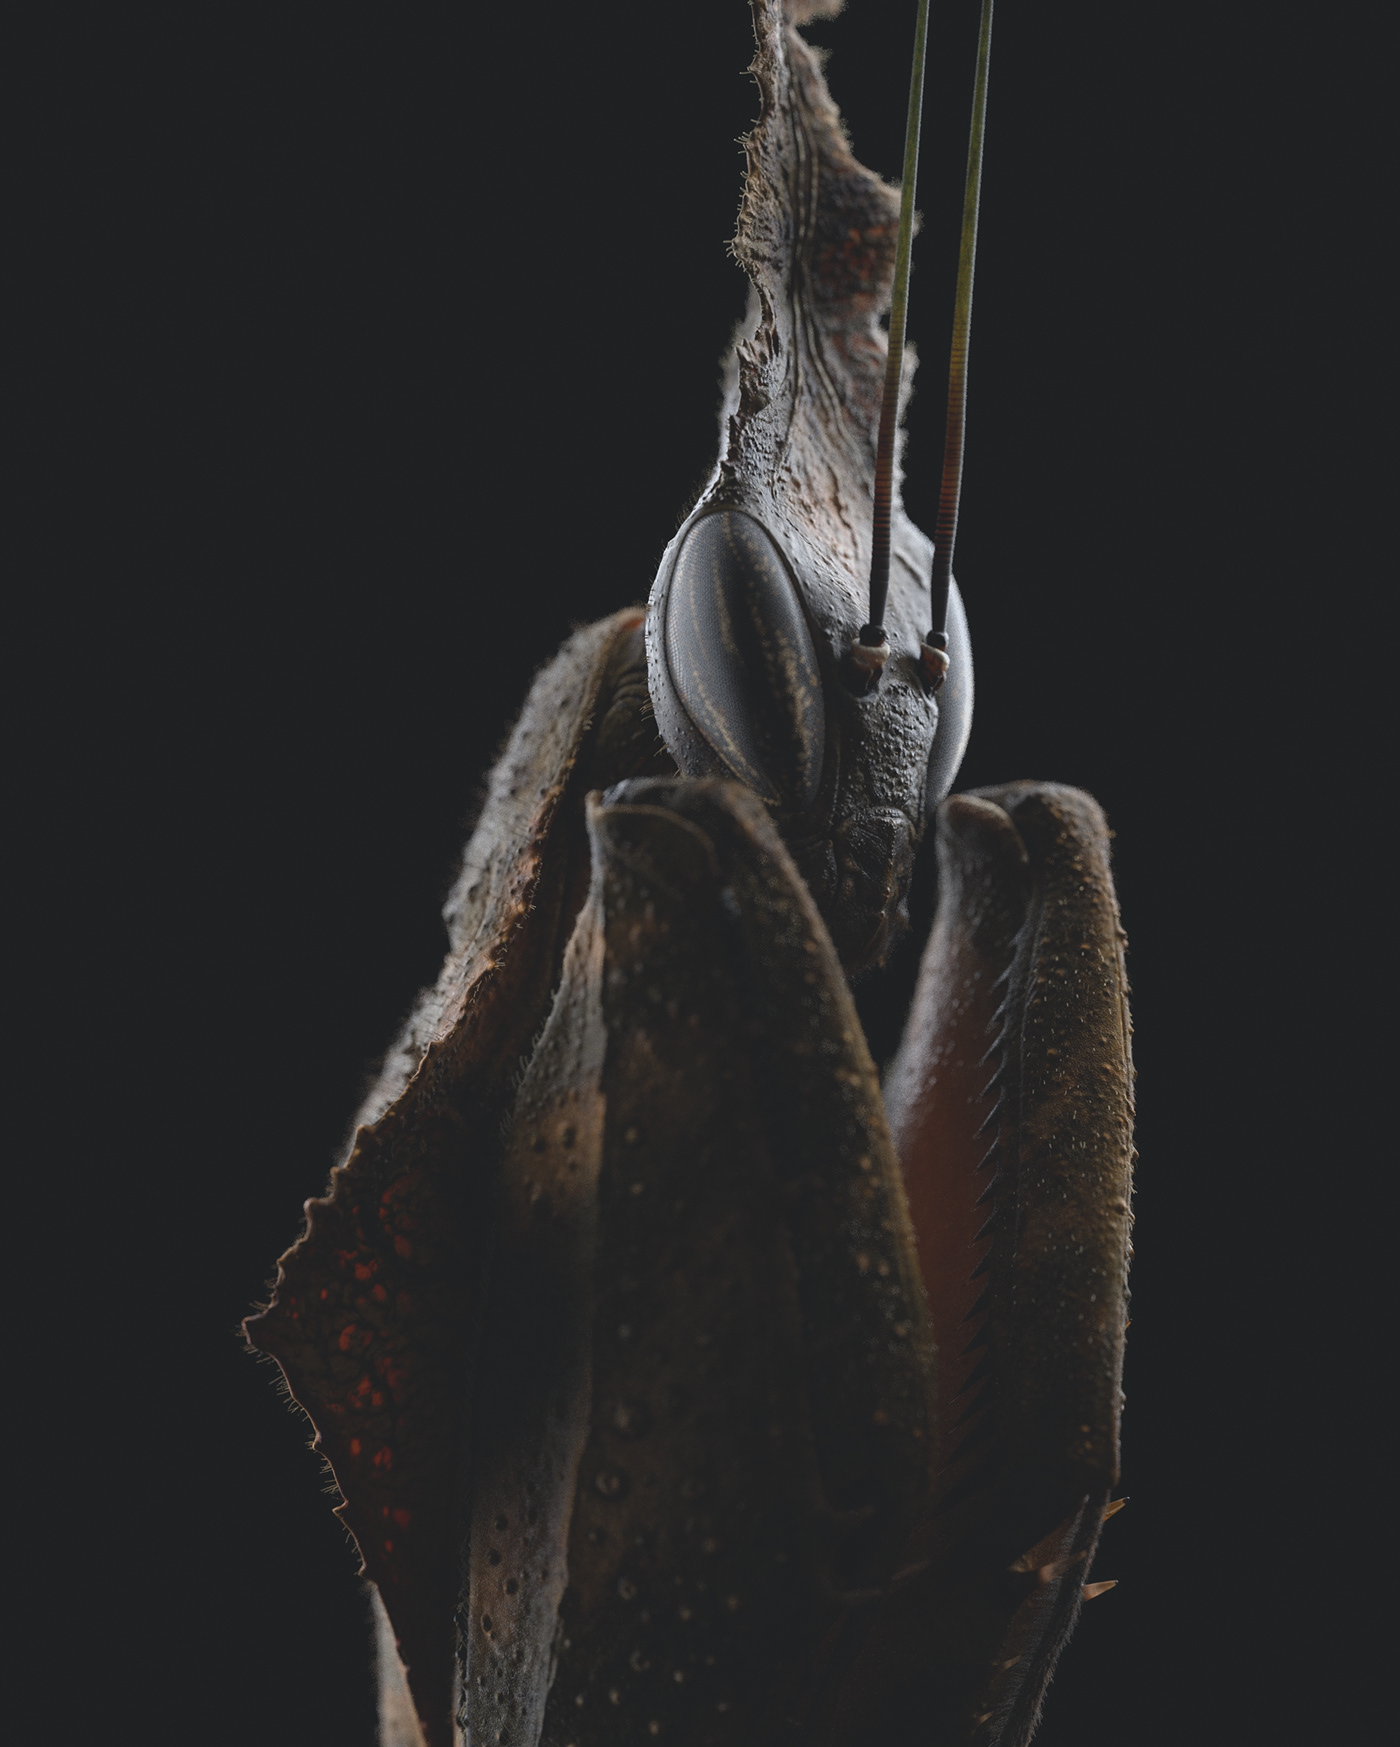 animal mantis insect Insects macro Render 3ds max vray ghost